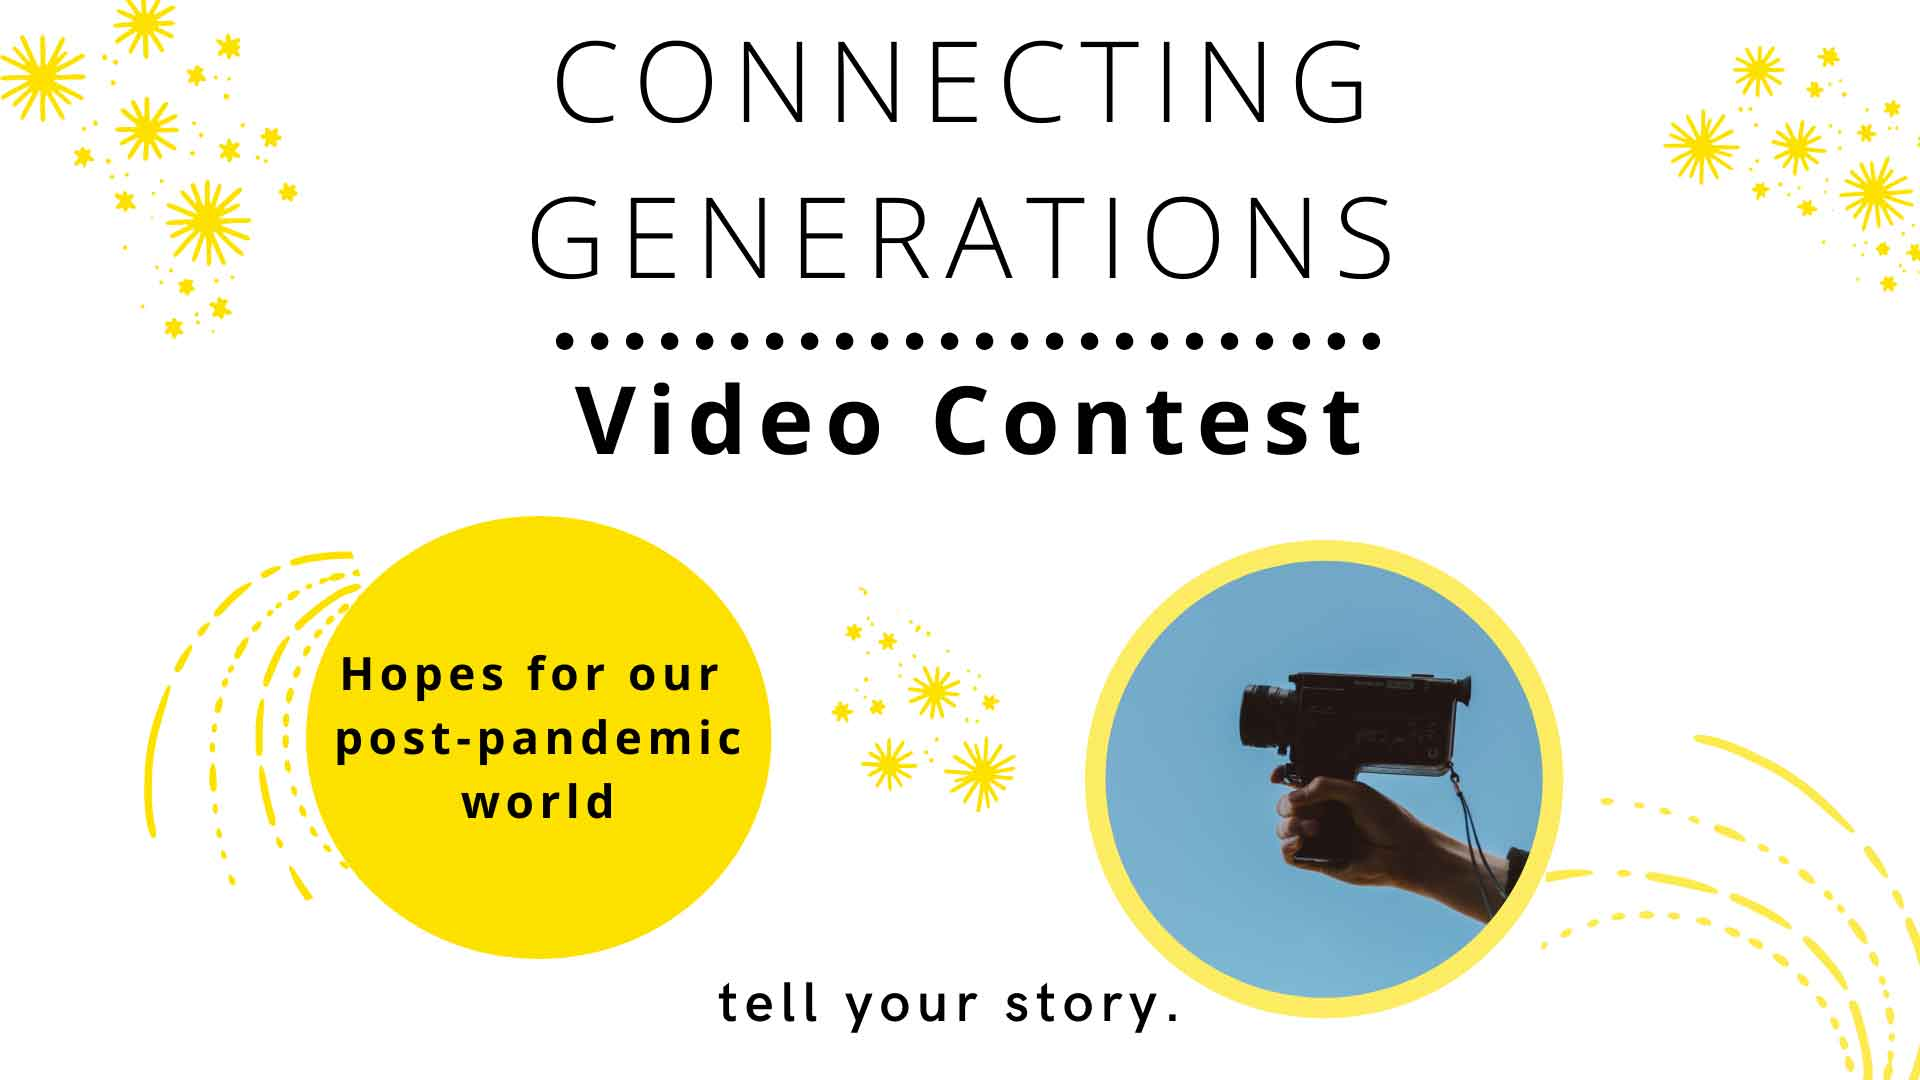 Image Text: Connecting Generations Video Contest: Hopes for our post-pandemic world. Tell your Story